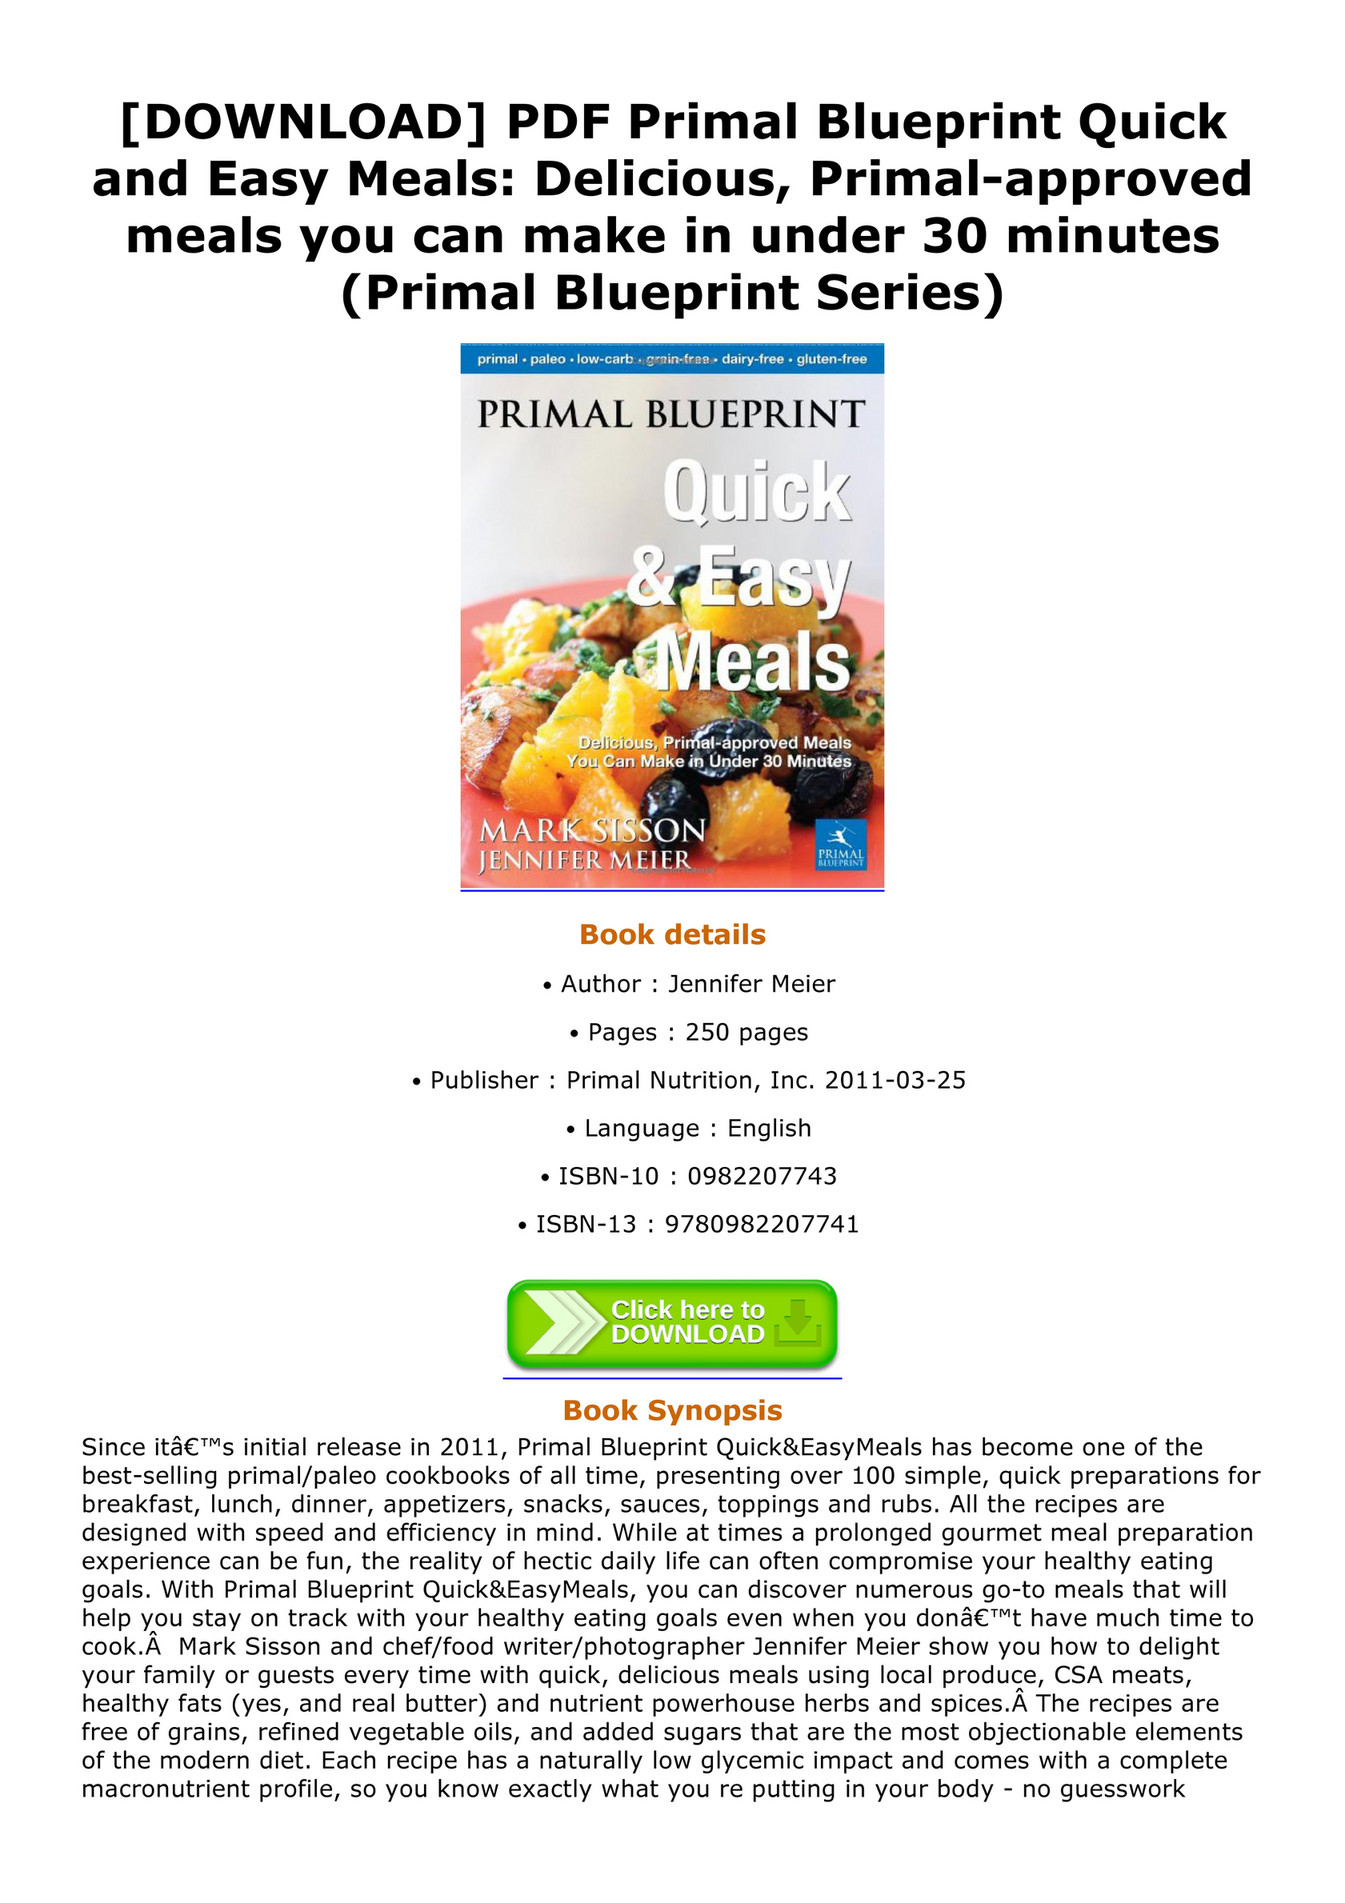 Nestor download pdf primal blueprint quick and easy meals nestor download pdf primal blueprint quick and easy meals delicious primal approved meals you can make in under 30 minutes primal blueprint series page malvernweather Choice Image